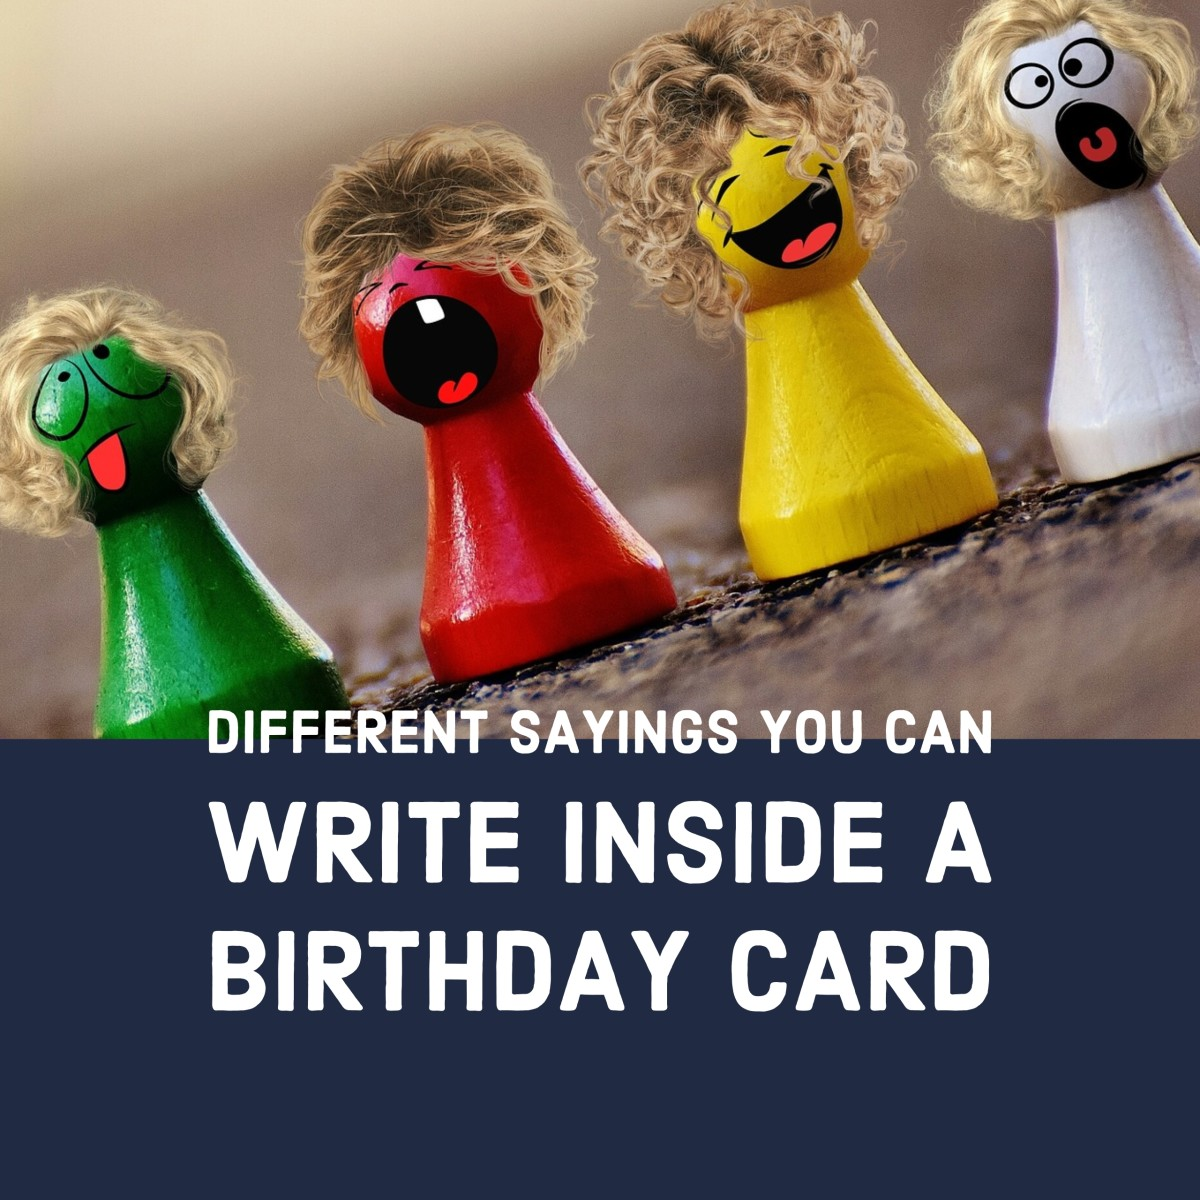 Different sayings you can write inside a birthday card